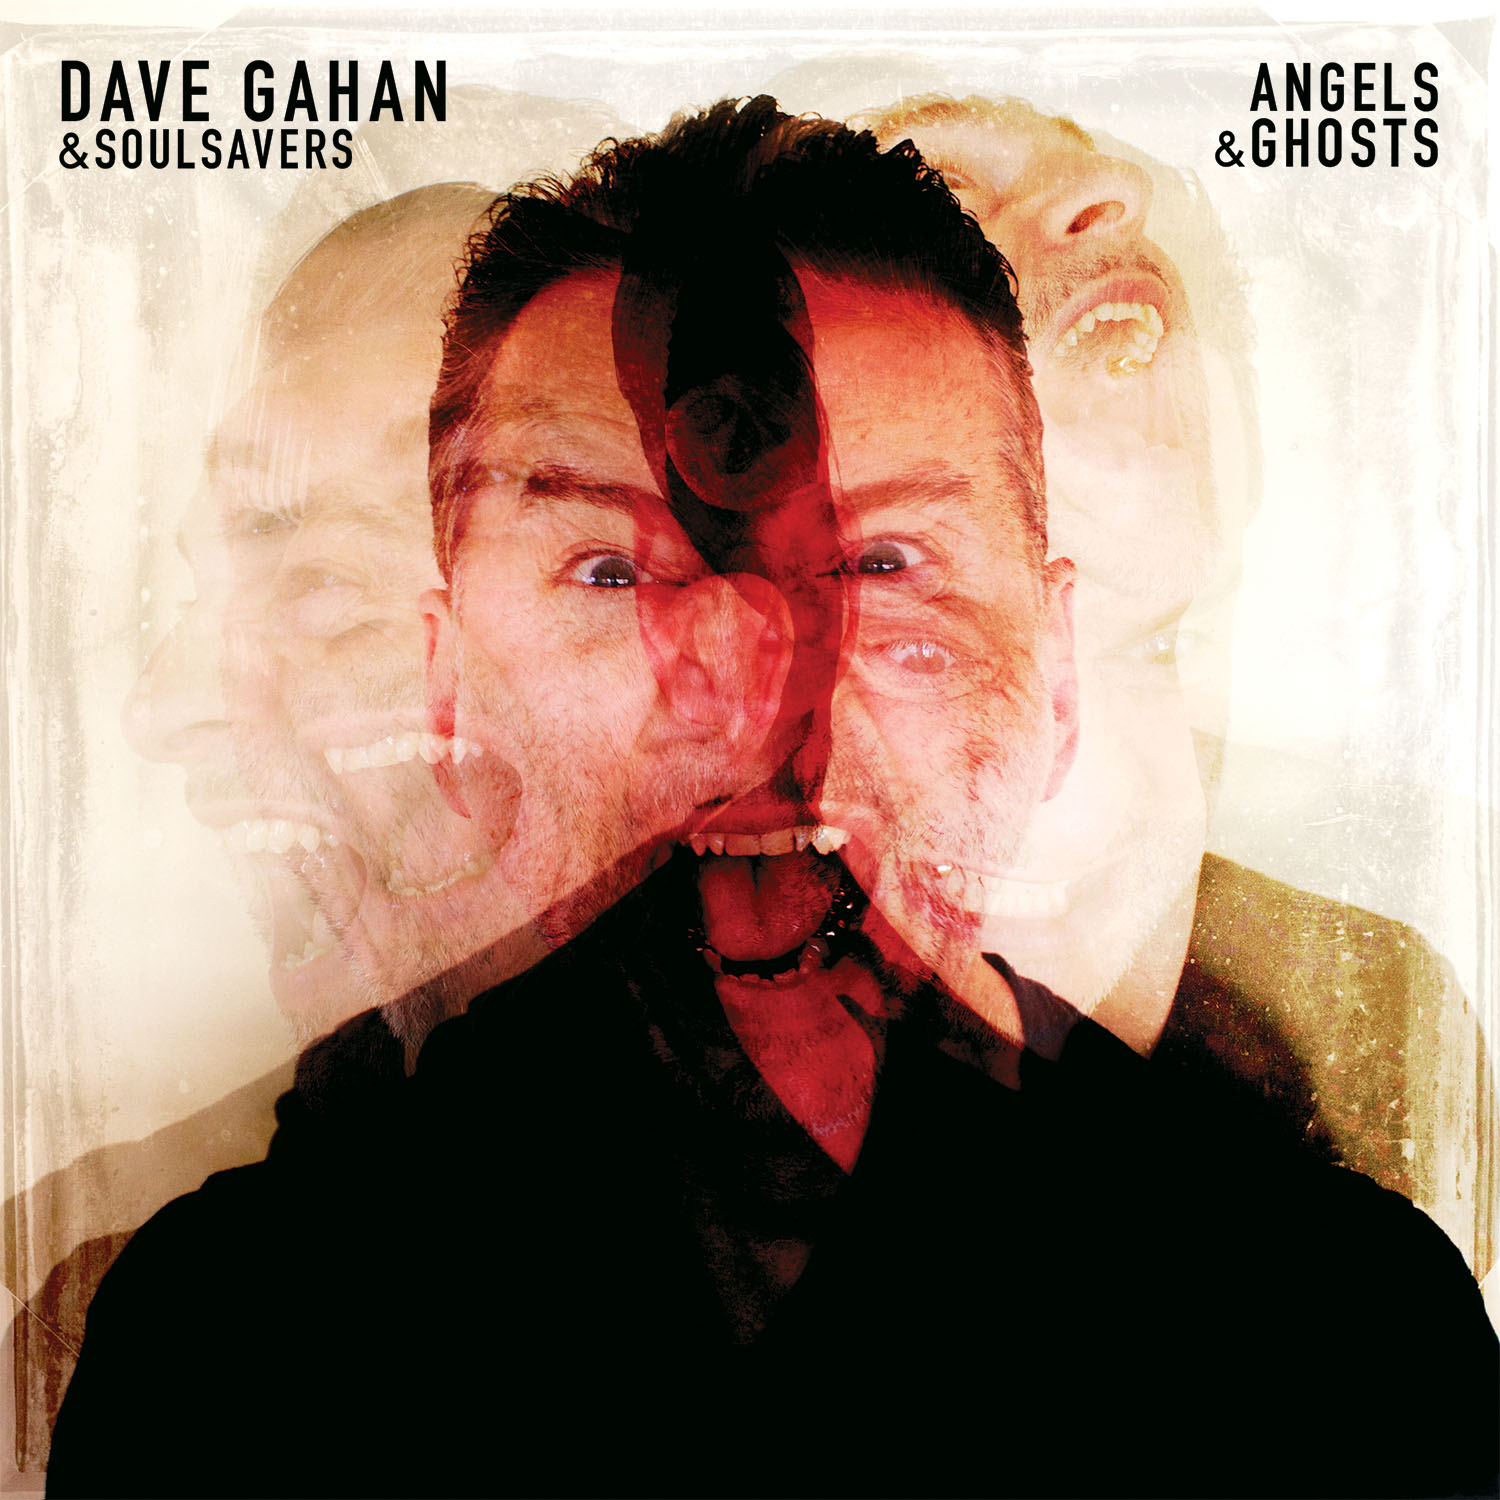 Dave Gahan & Soulsavers album cover